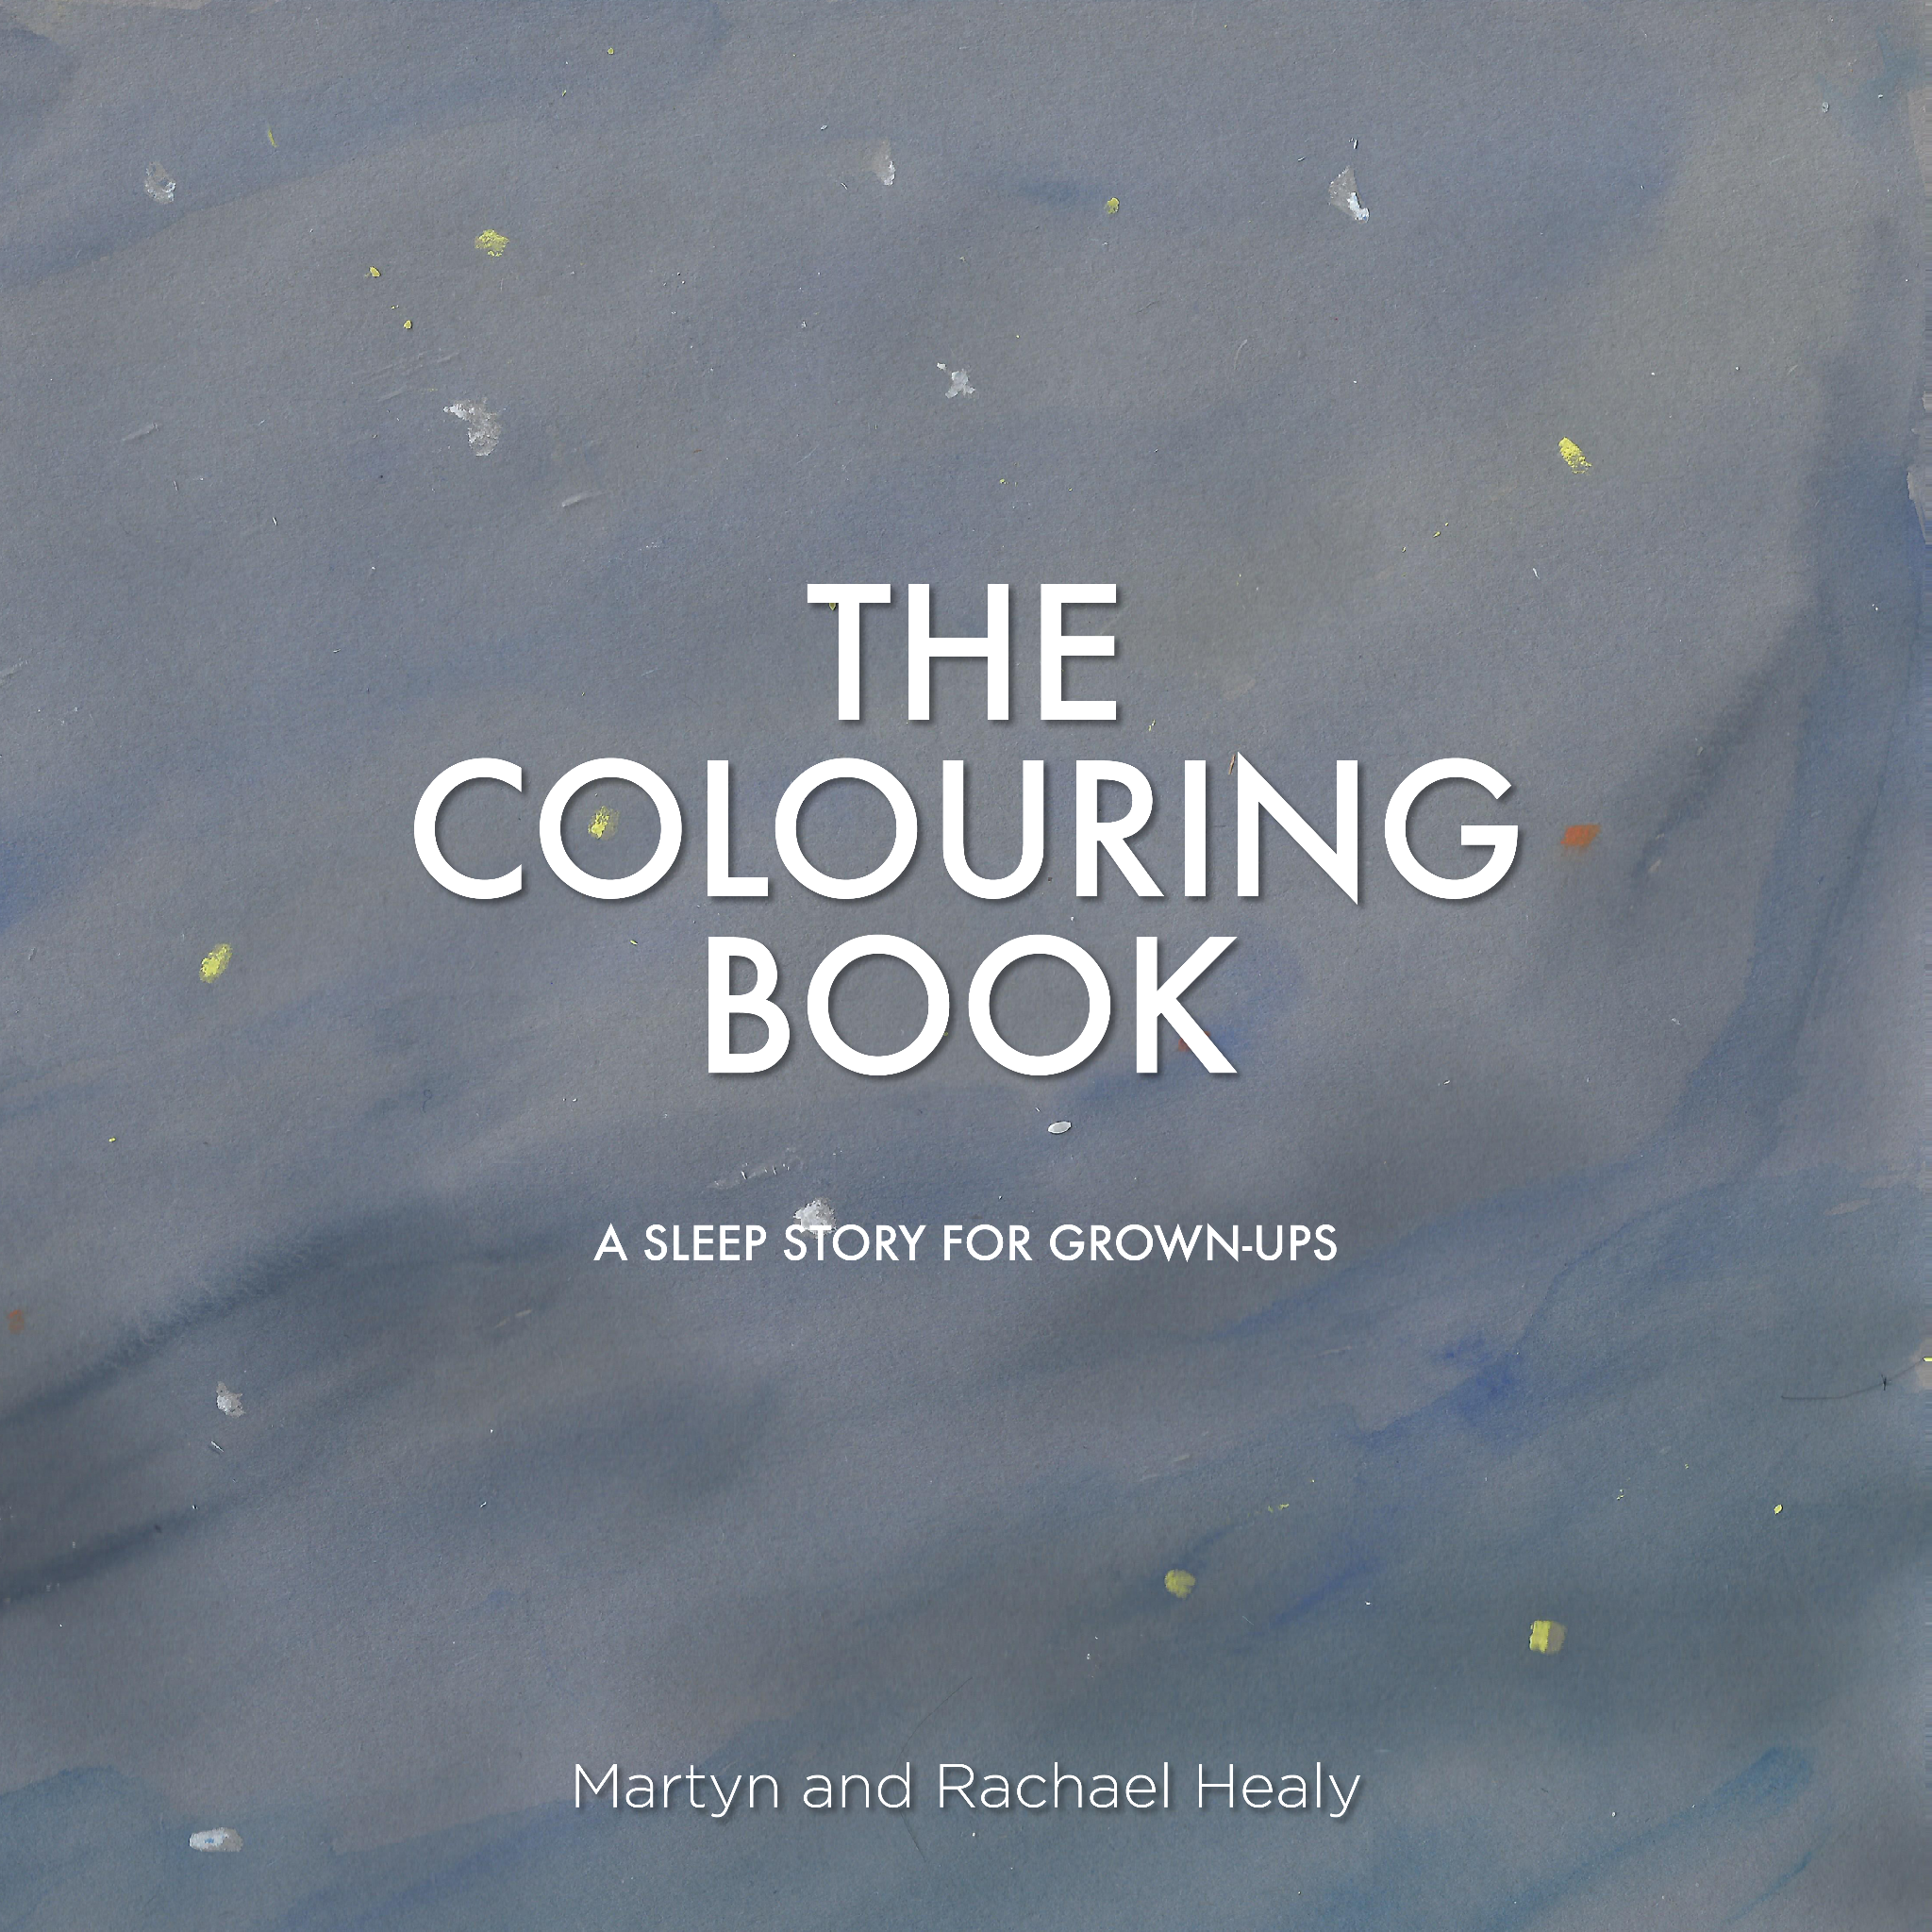 The Colouring Book: A Sleep Story for Grown-ups